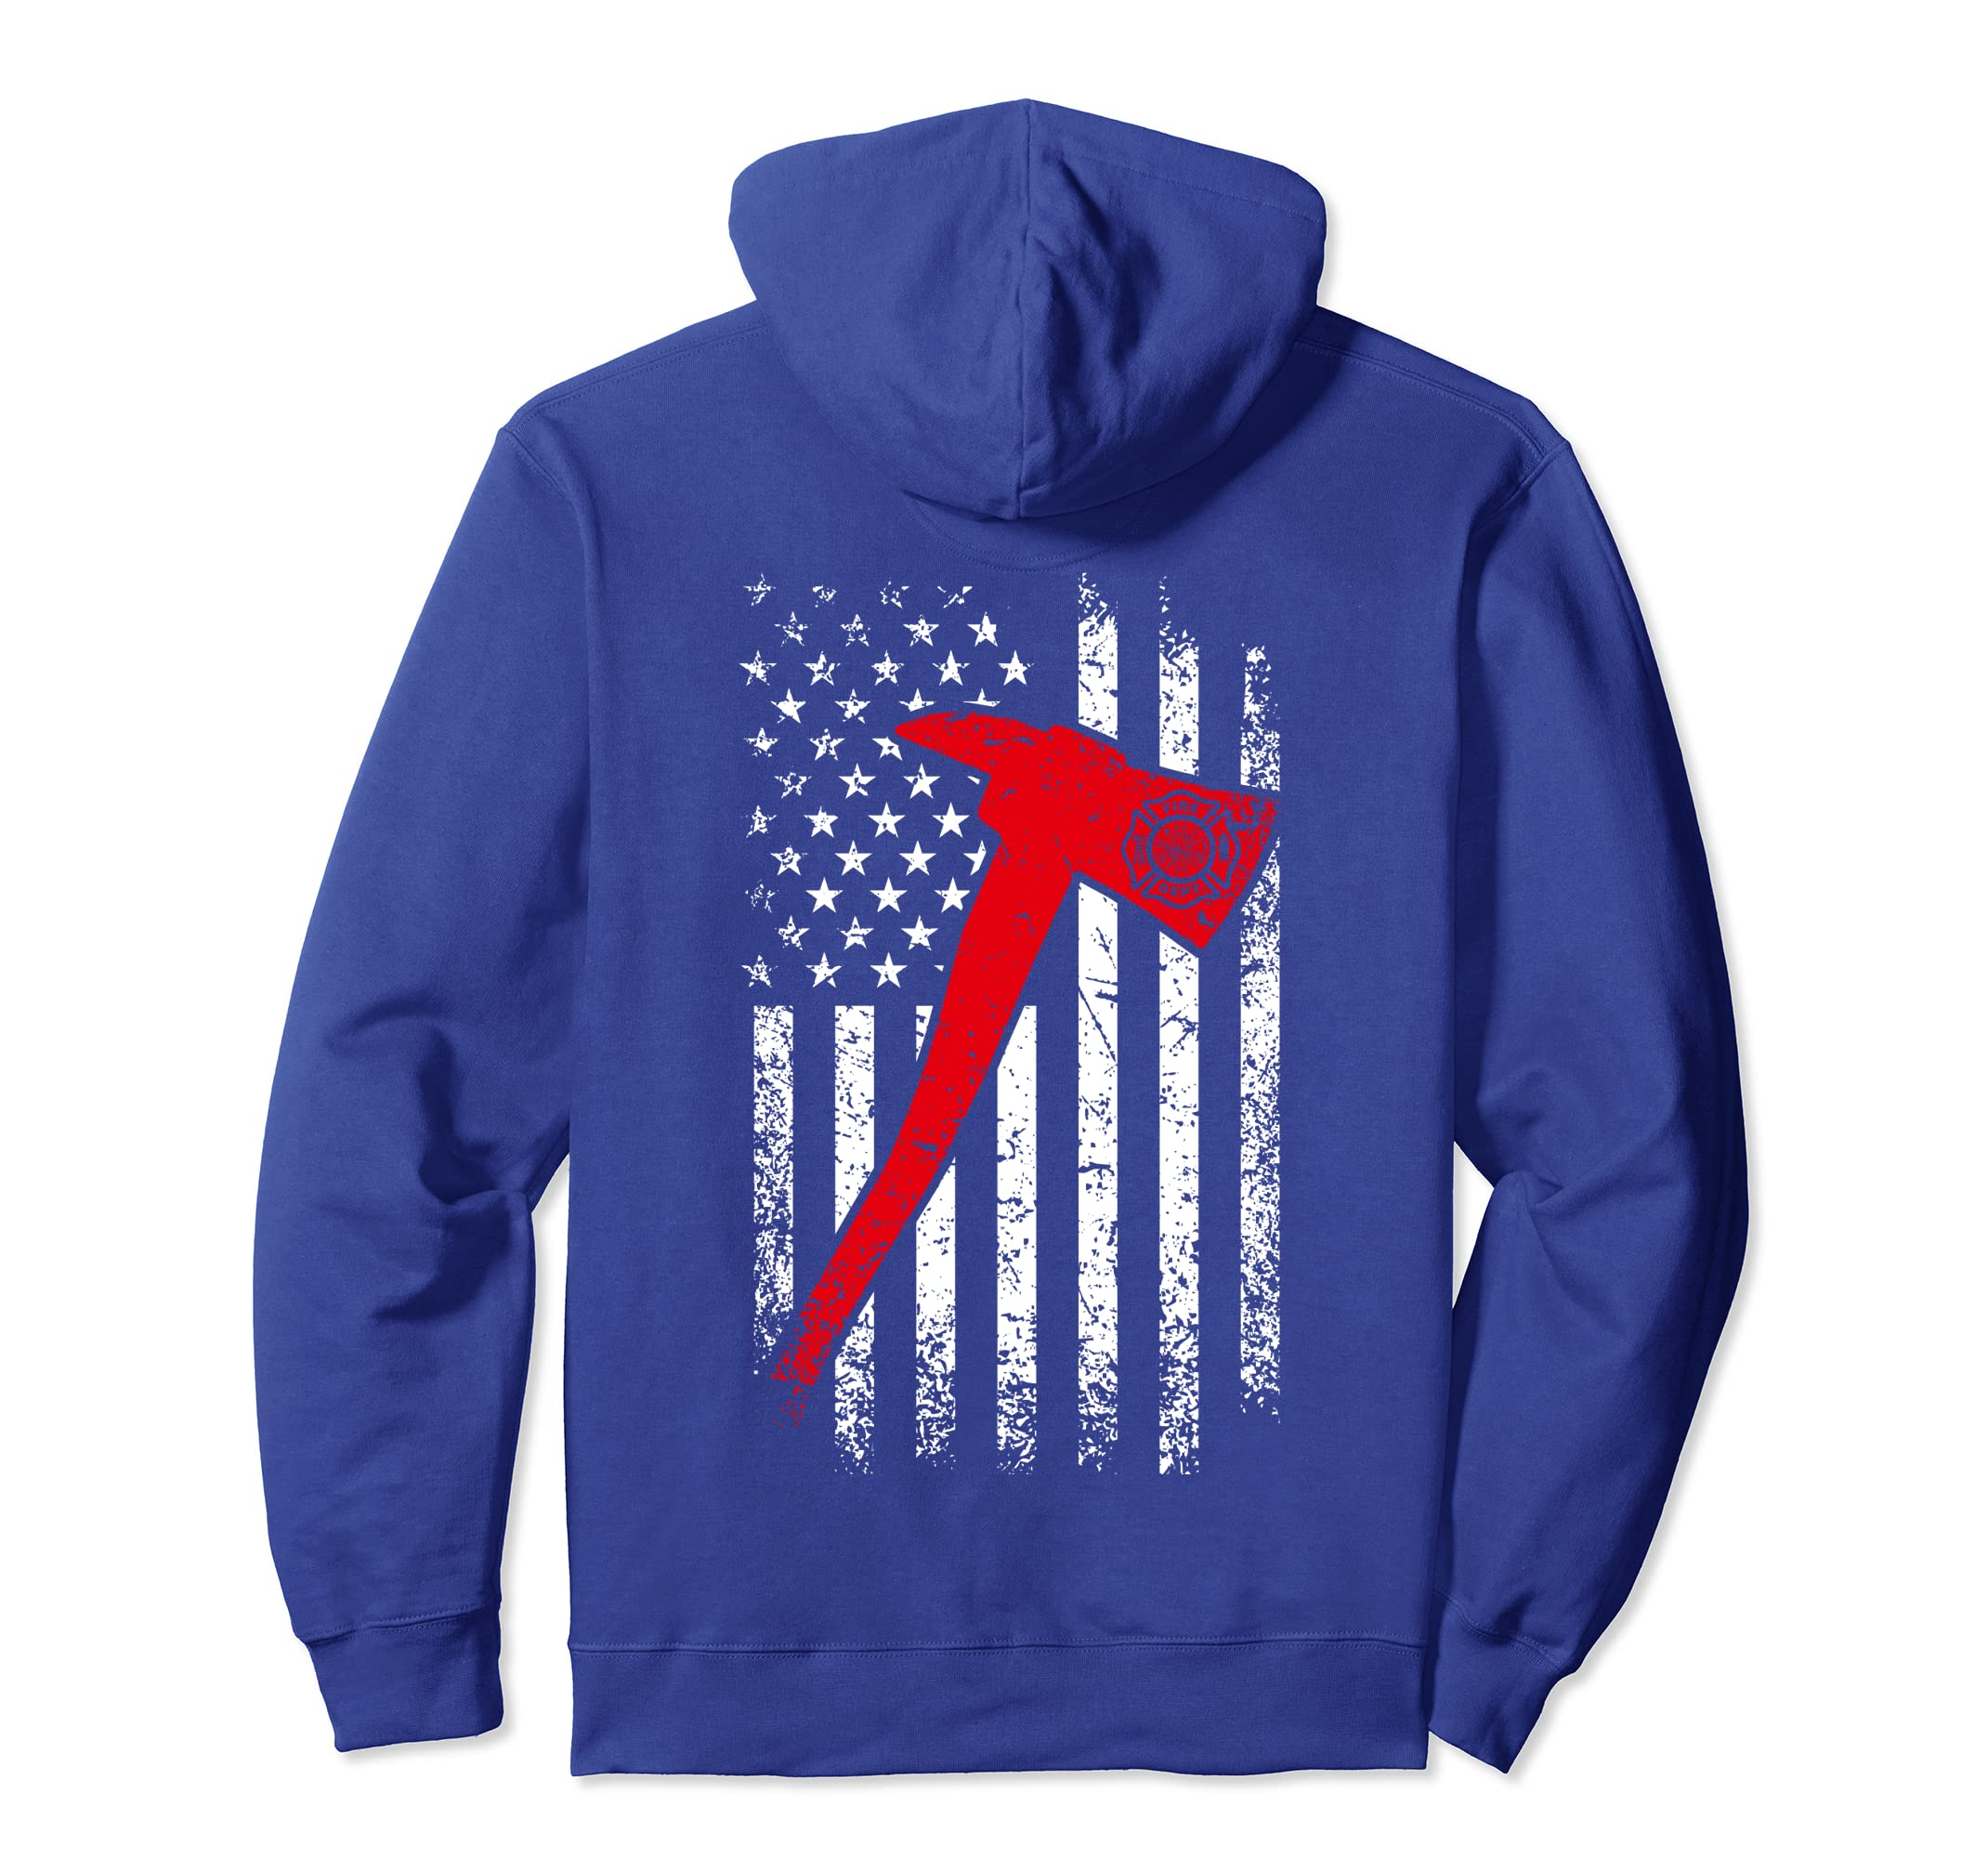 f0d72b82 Amazon.com: Thin Red Line Firefighter Hoodie Fire Axe Distressed Hoodie:  Clothing